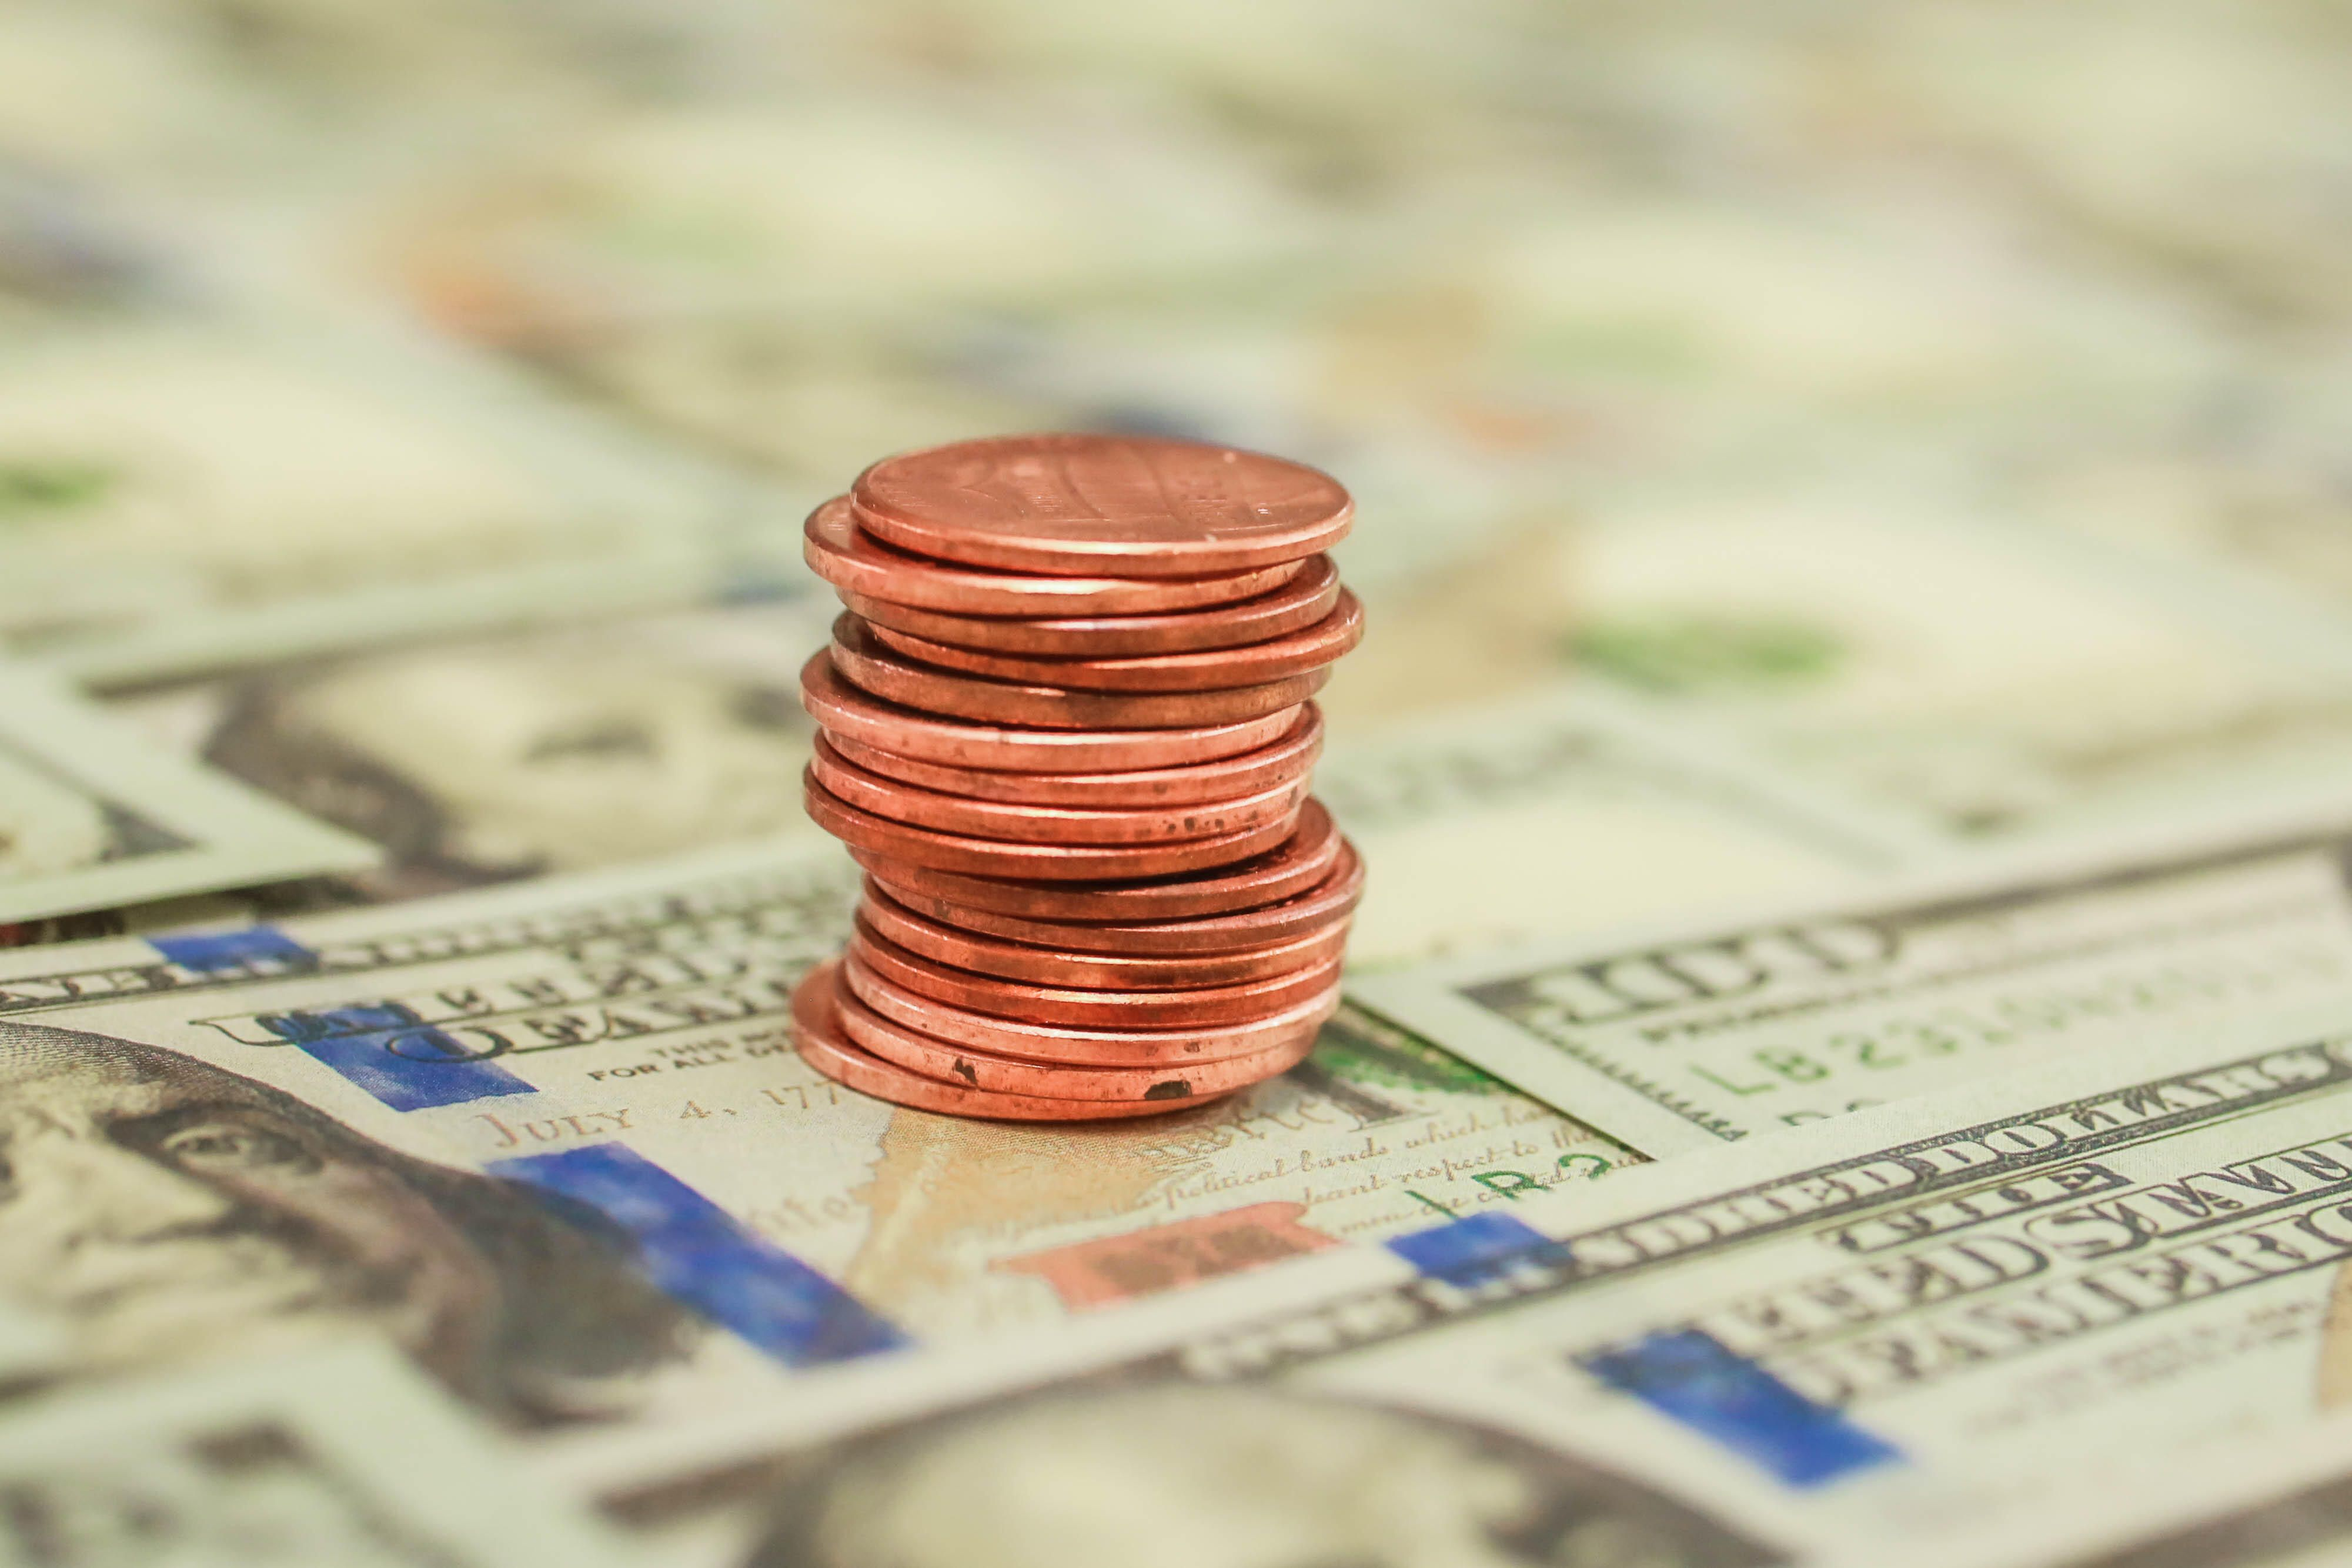 poor-small-change-pennies-on-the-dollar-money-cash-stimulus-payments-personal-finance-013